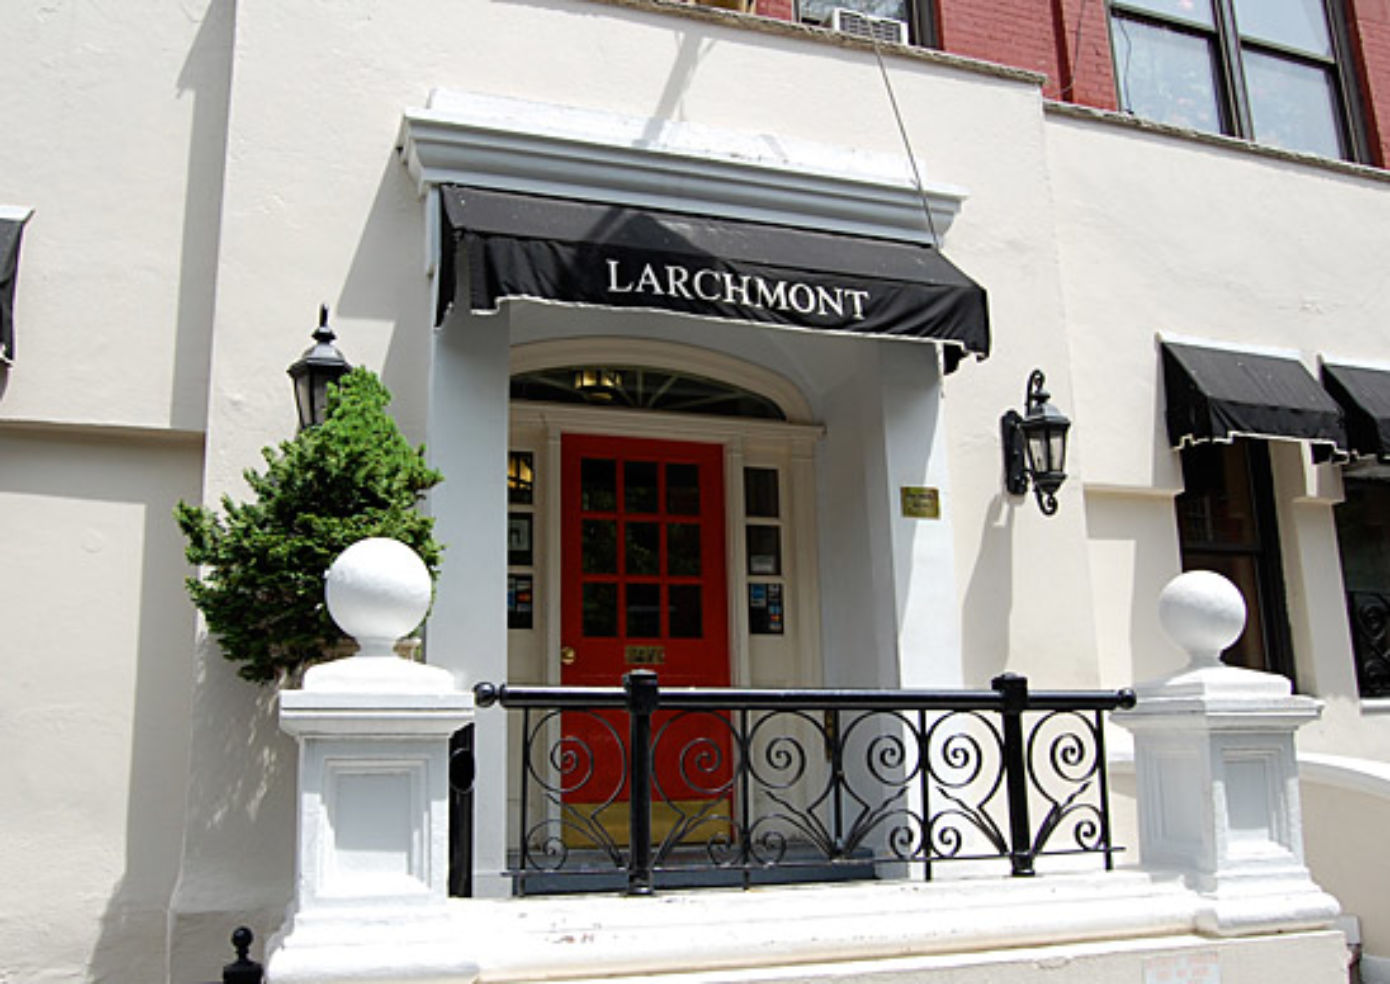 The exterior of The Larchmont.